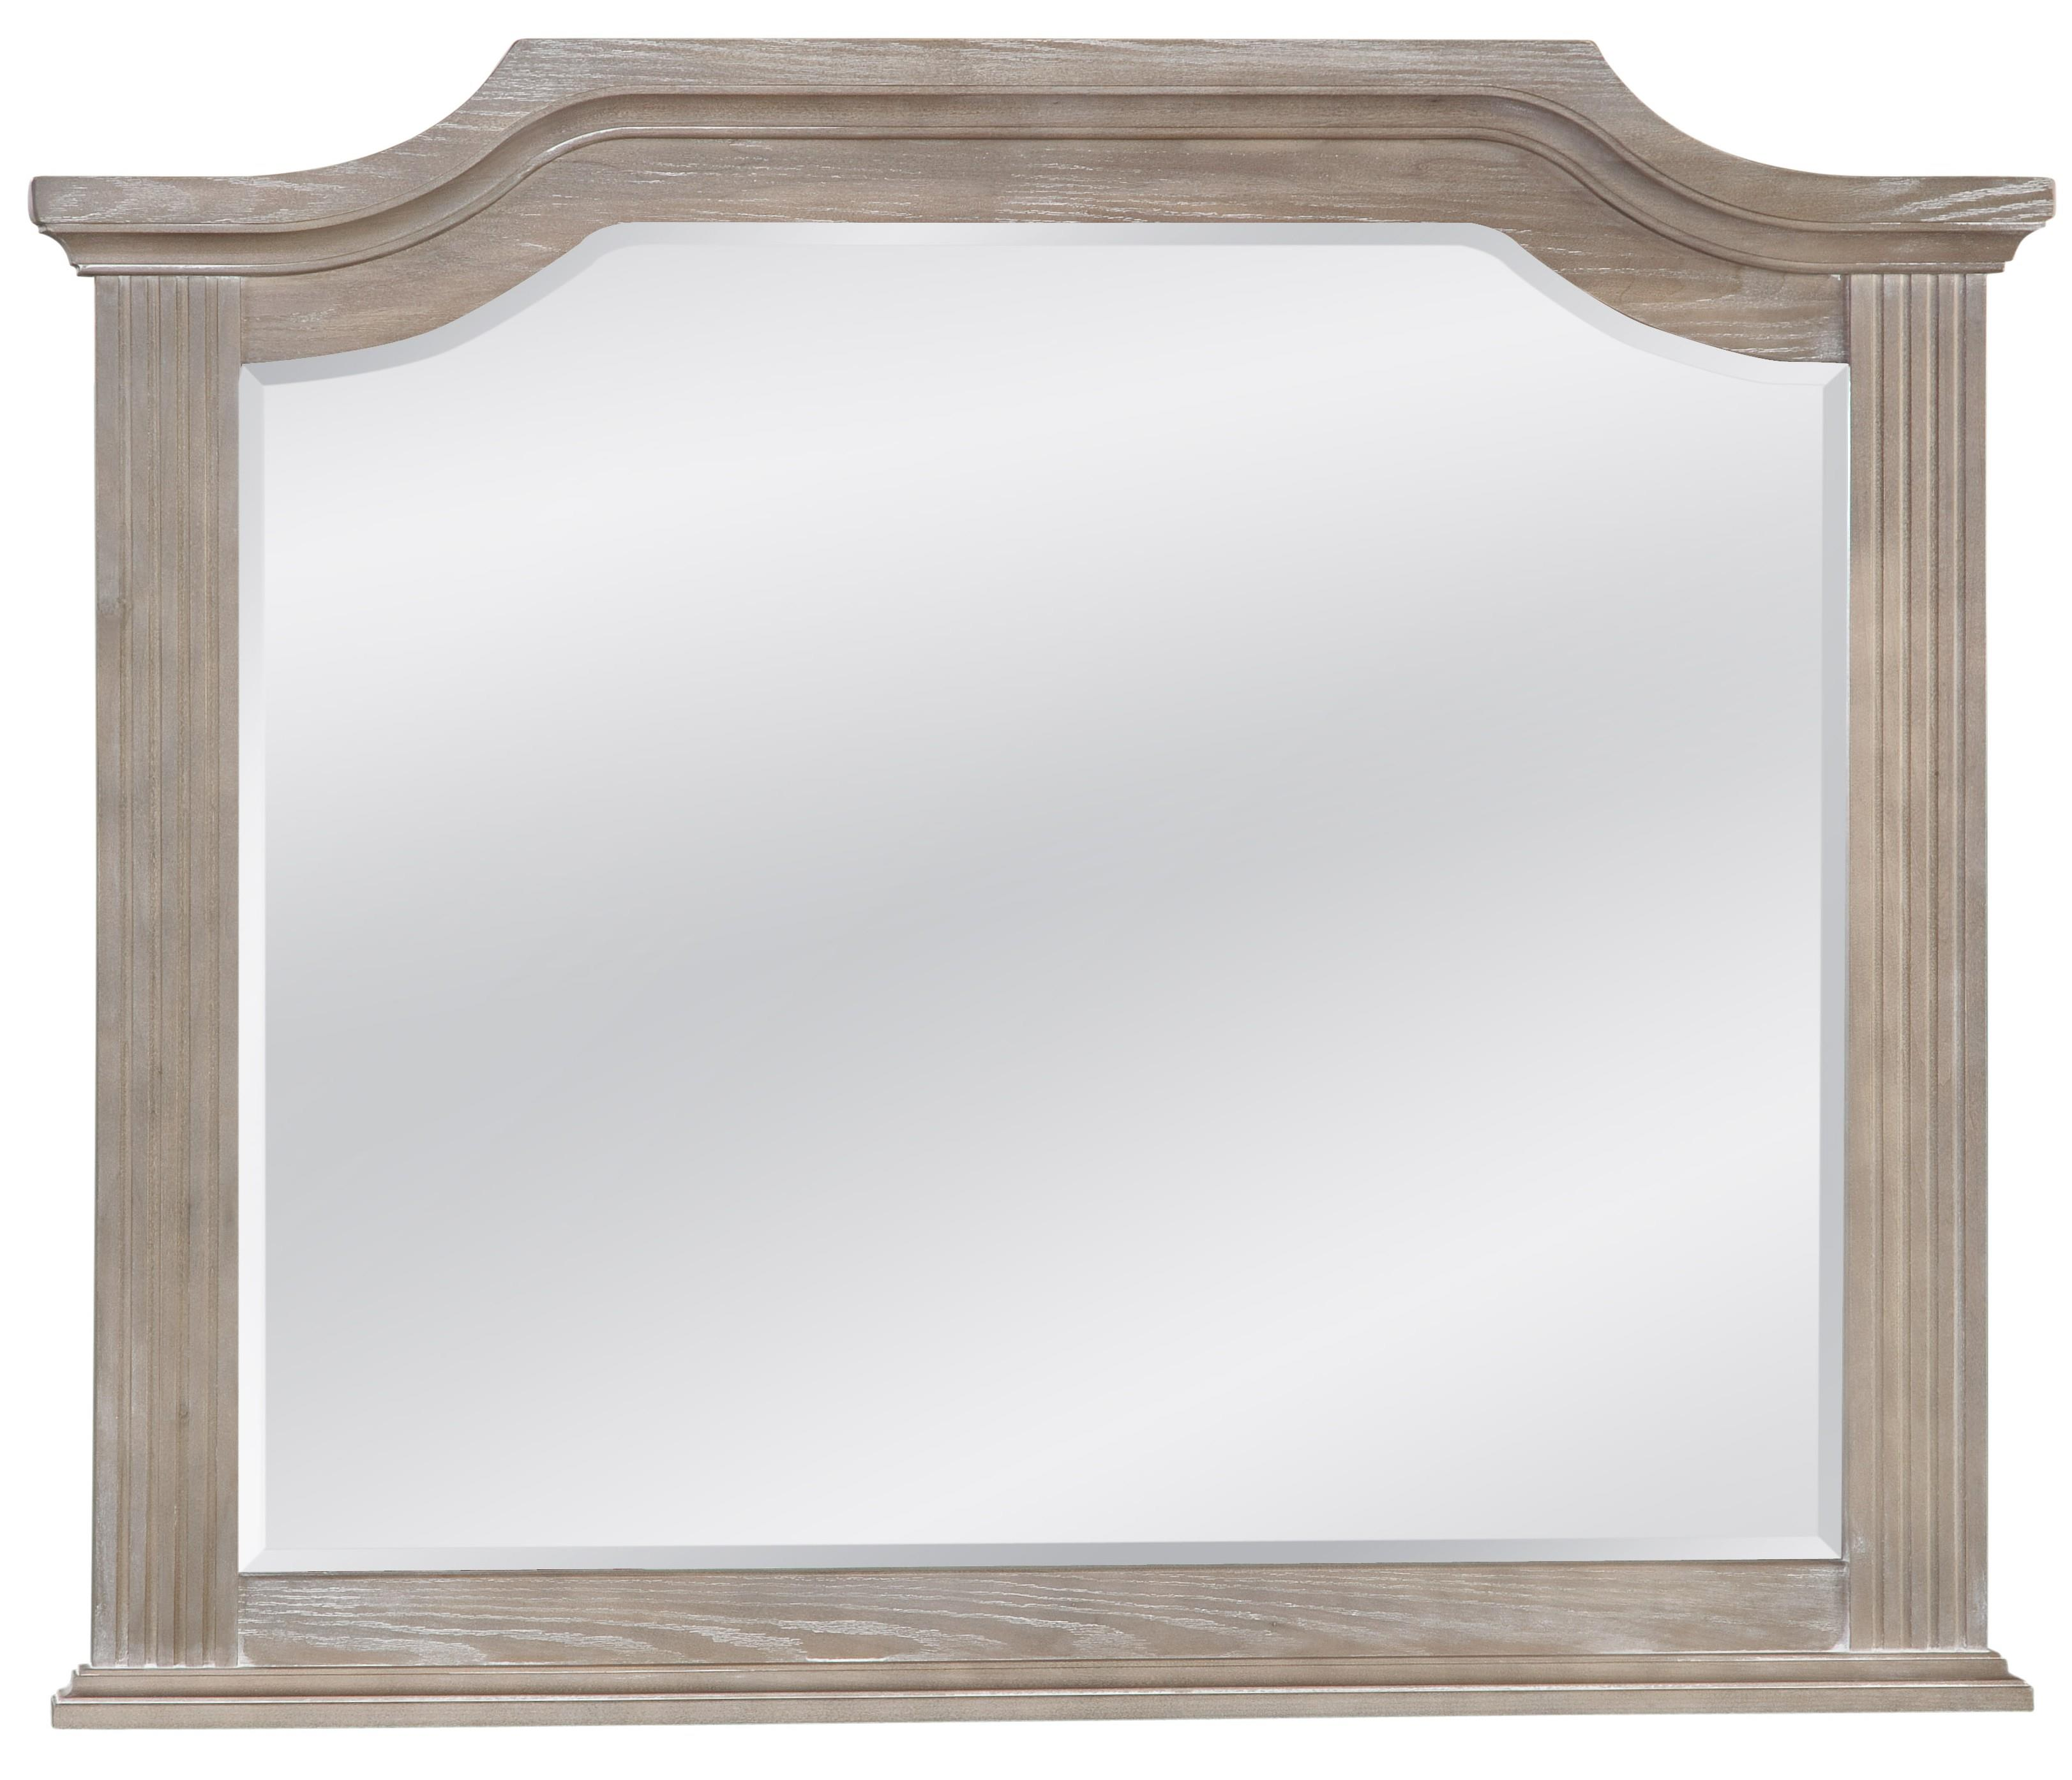 Vaughan Bassett Affinity Arch Mirror - Beveled glass - Item Number: 564-447